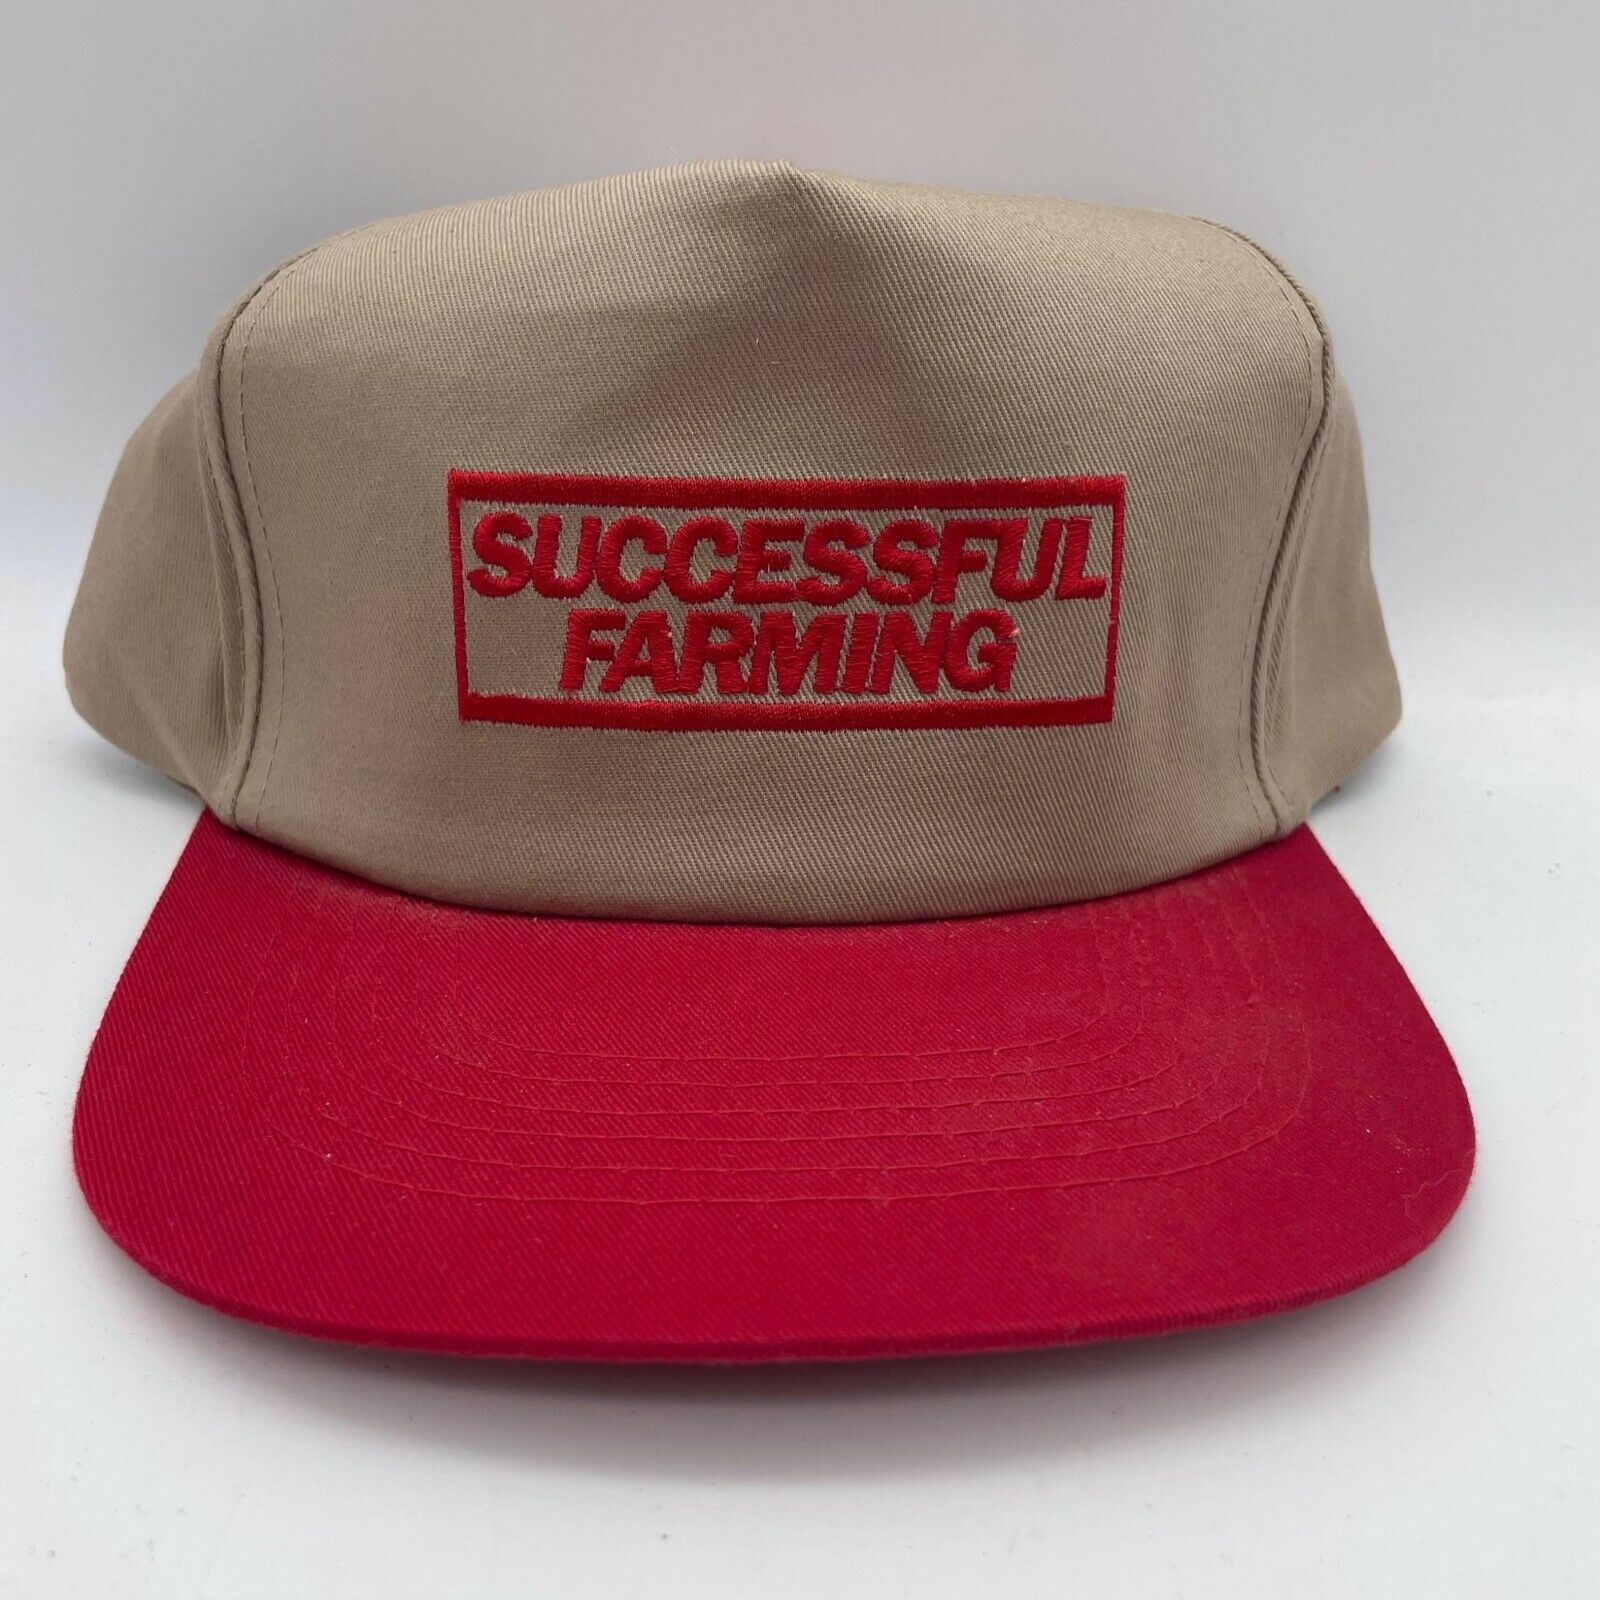 Red Successful Farming SnapBack Hat - image 1